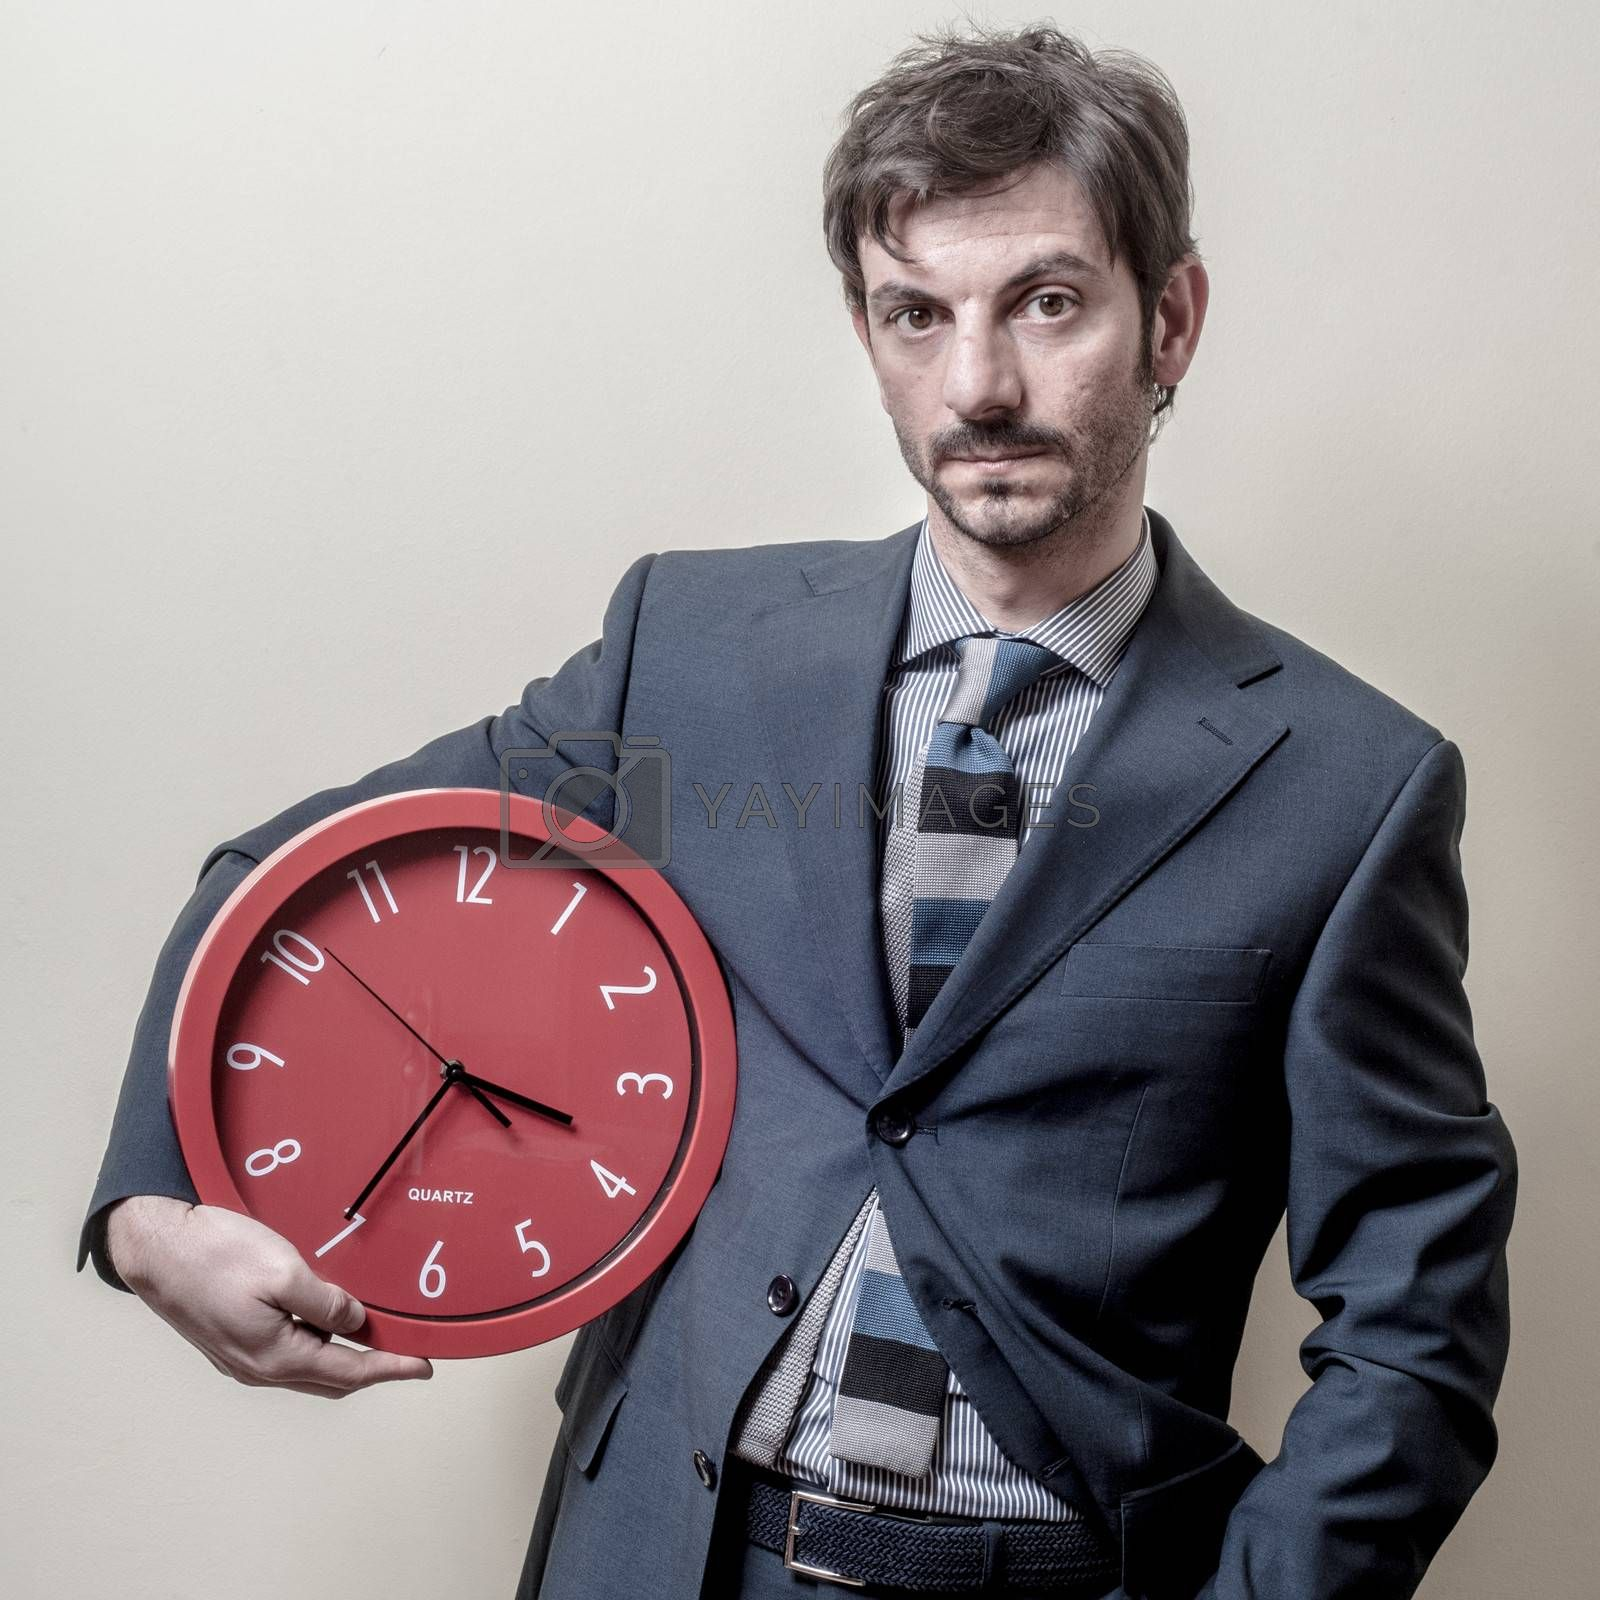 Royalty free image of businessman with clock by peus